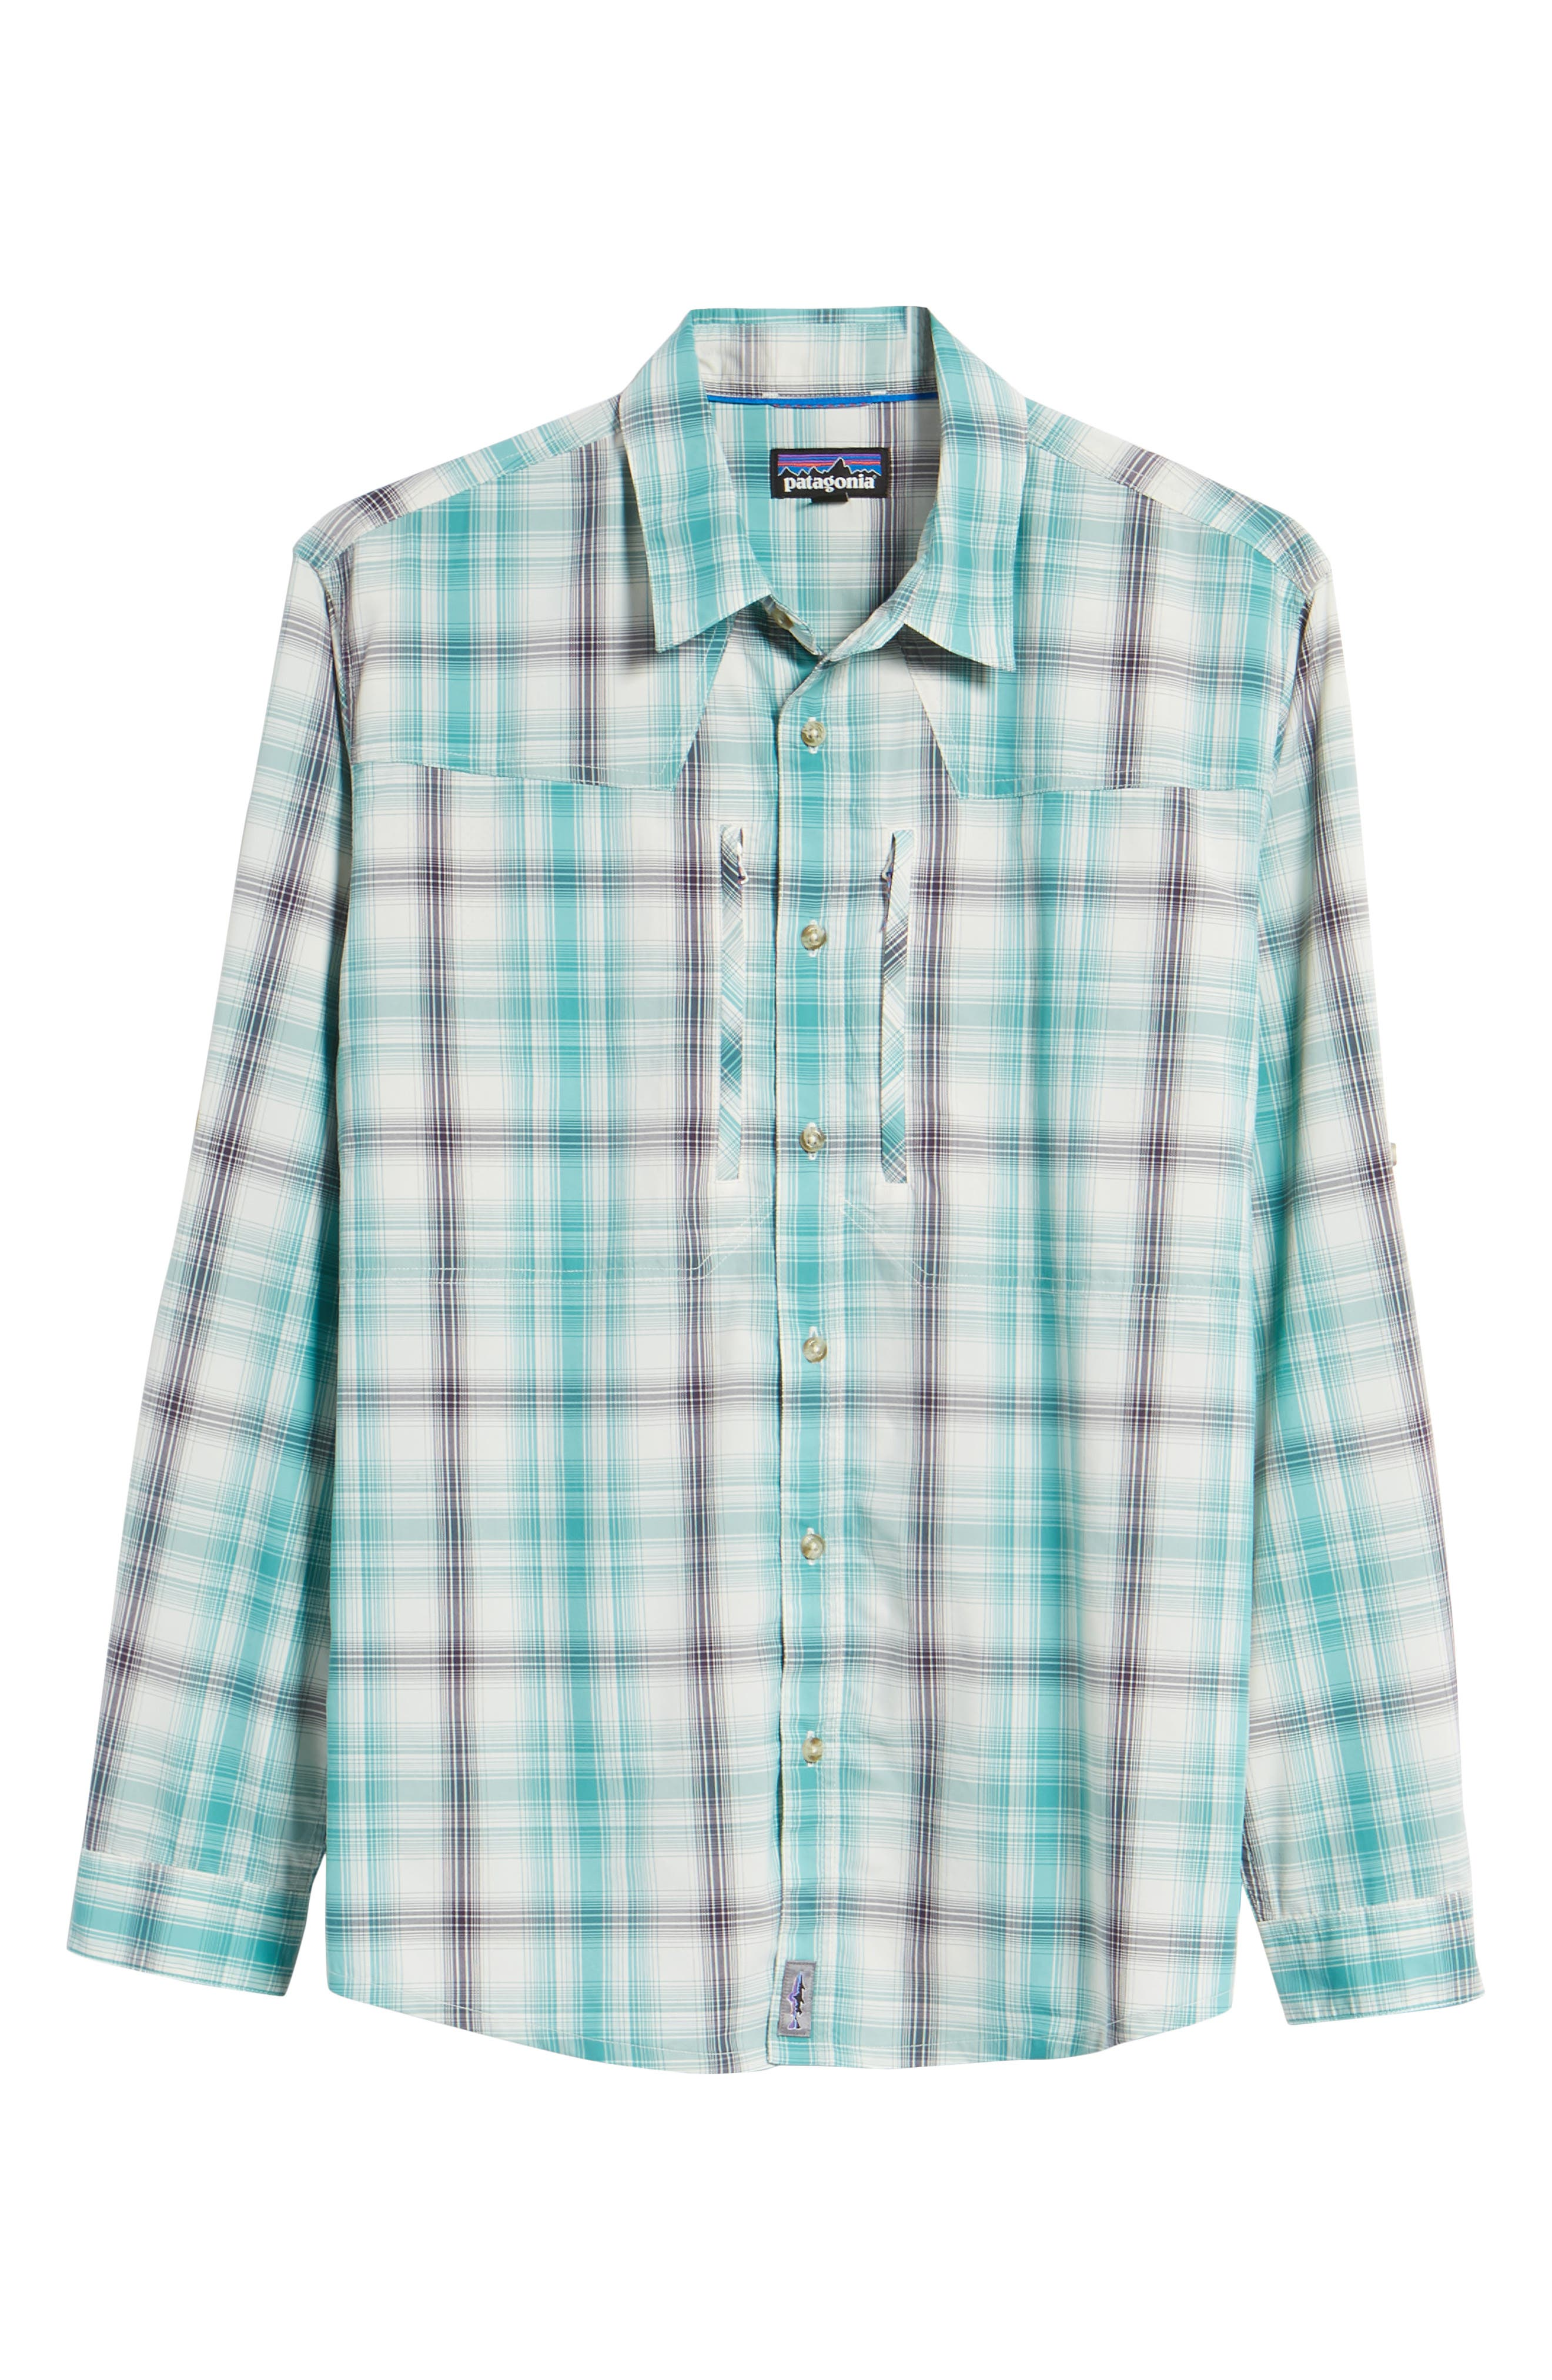 Regular Fit Plaid Sport Shirt,                             Alternate thumbnail 6, color,                             King Swing/ Piton Purple